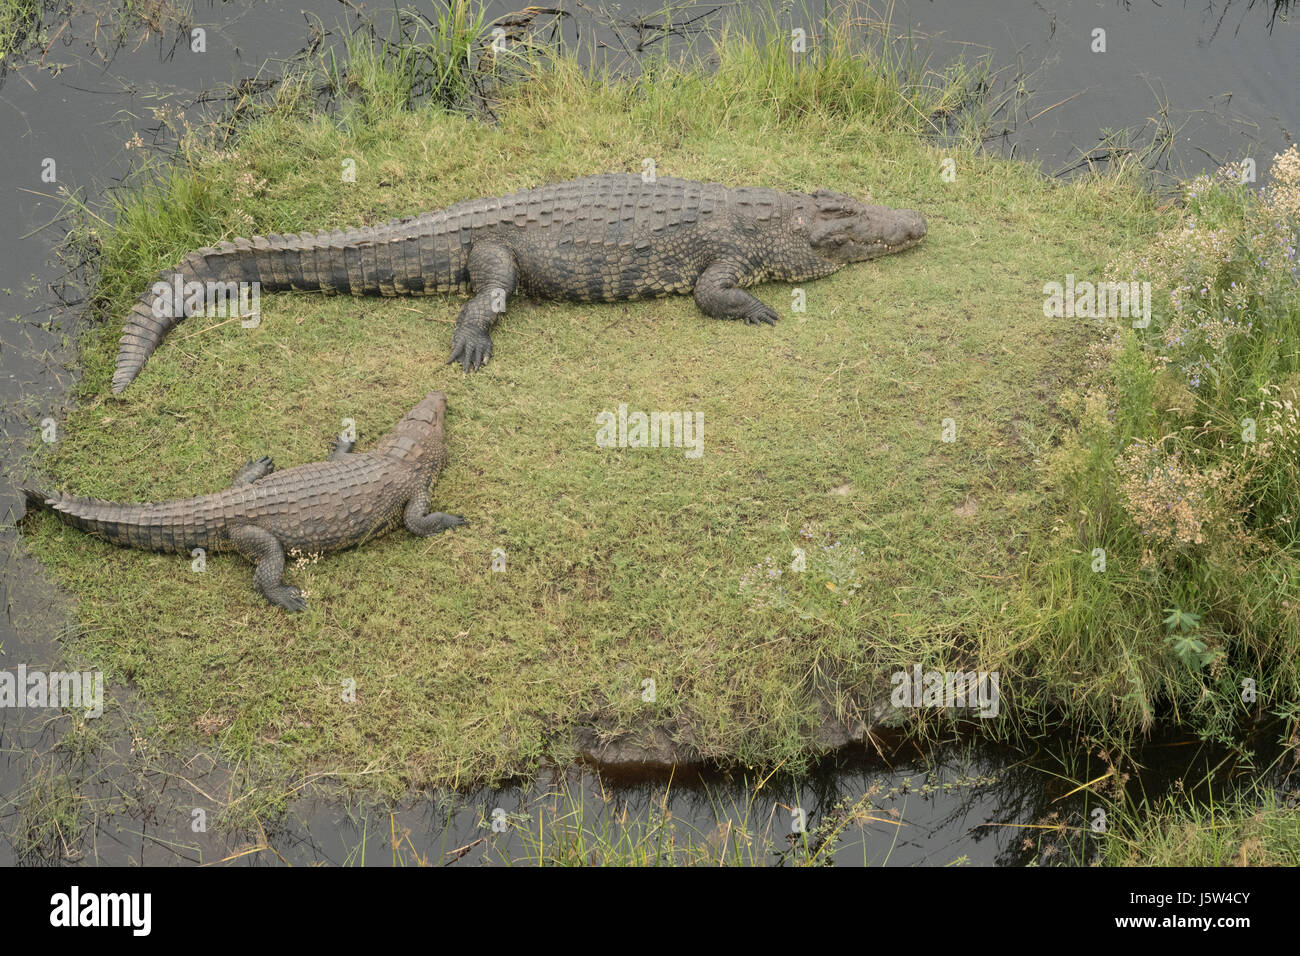 Nile Crocodile paid resting in the flood waters of the Okavango Delta in Botswana - Stock Image